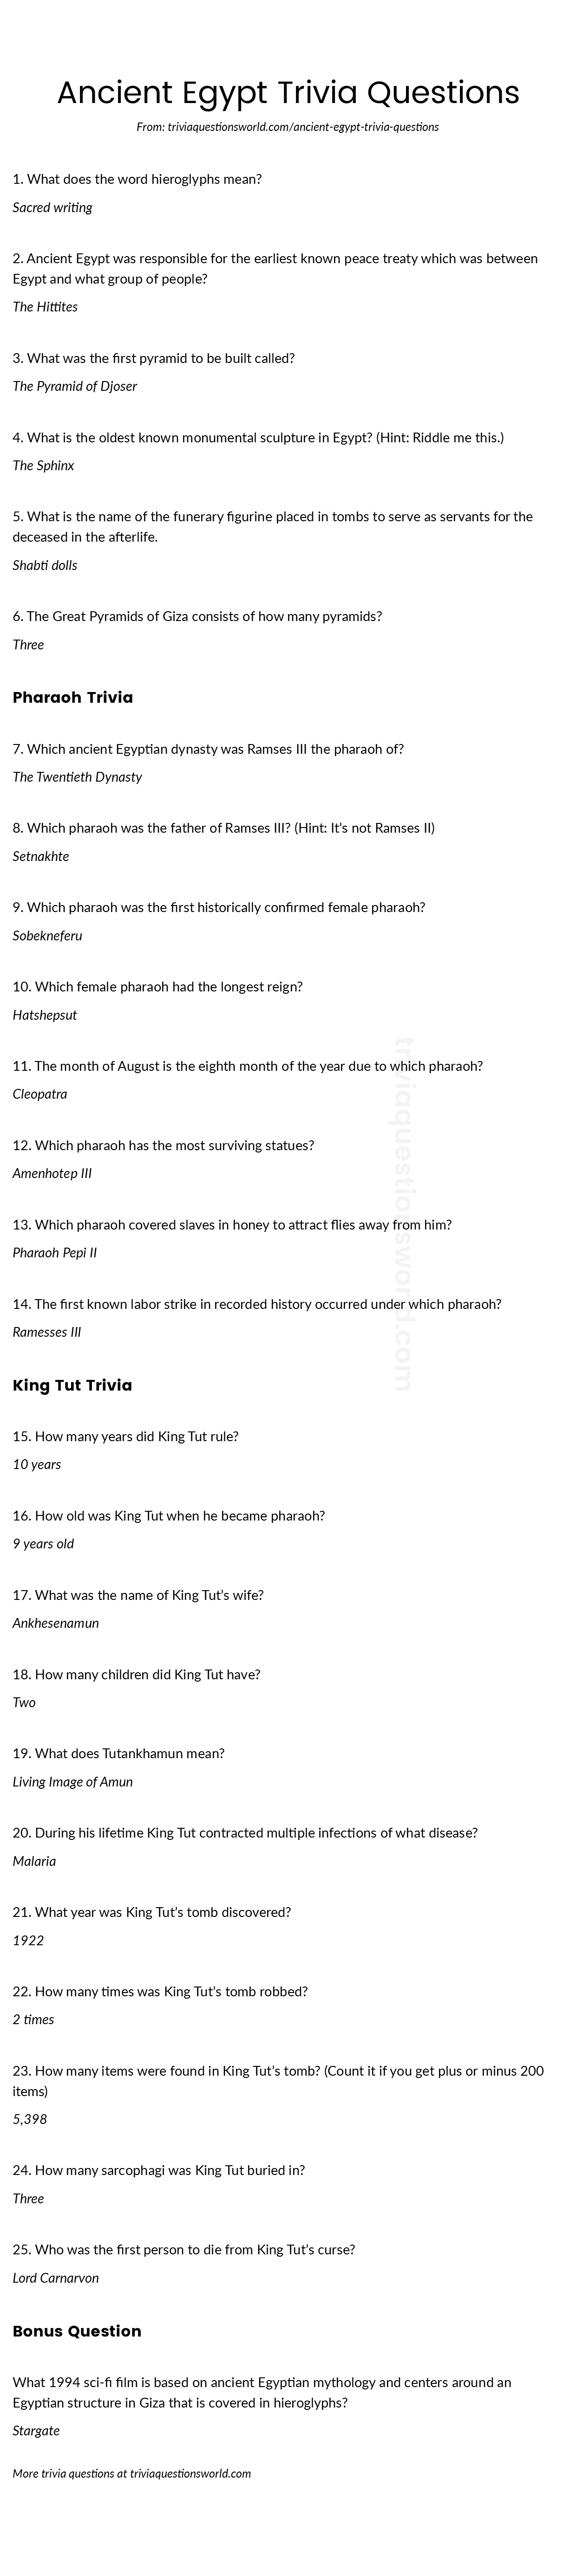 Ancient Egypt Trivia Questions And Answers